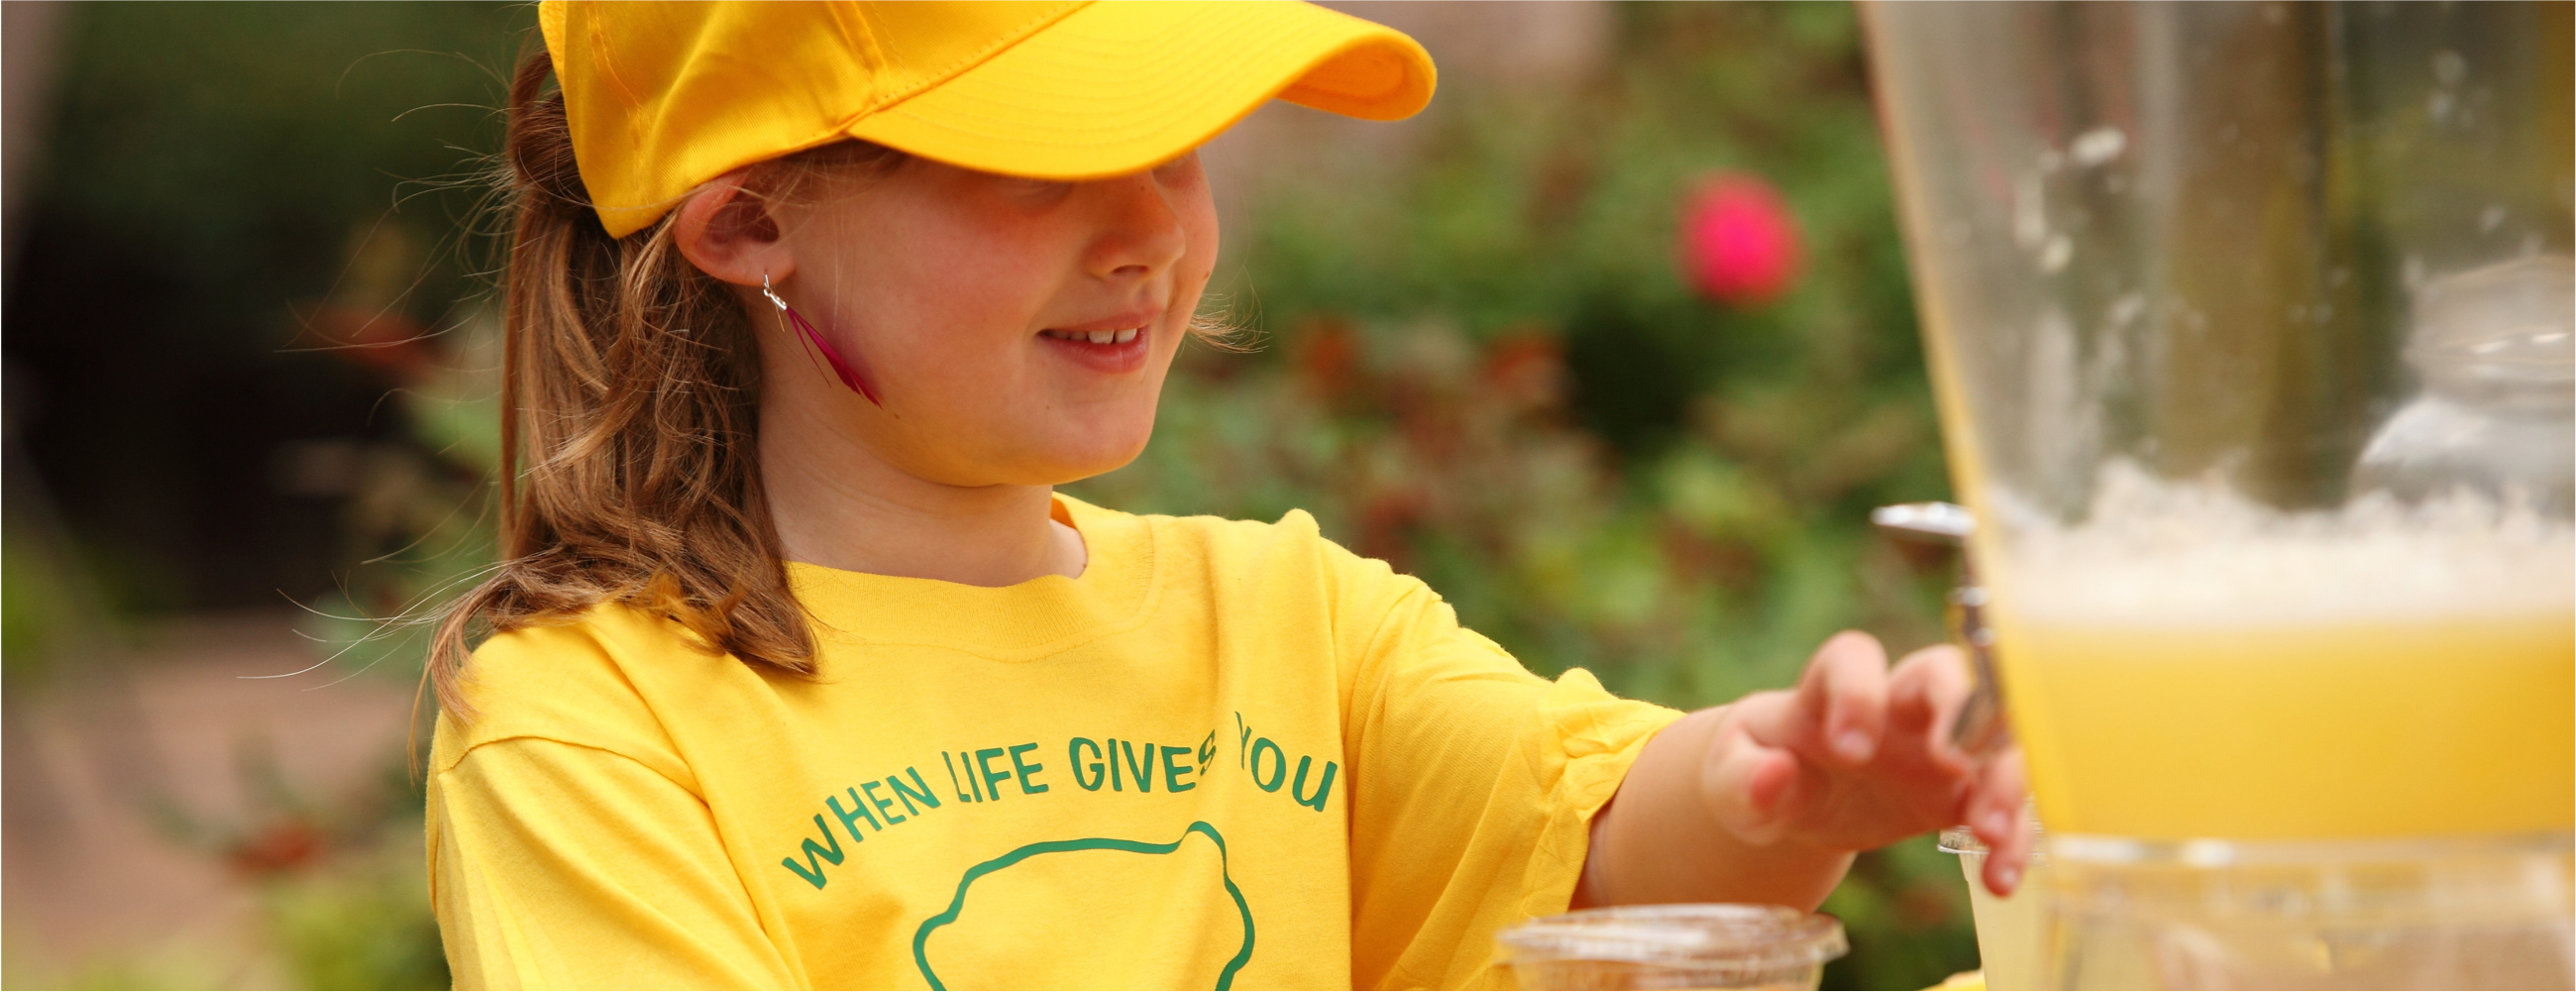 SHOW US YOUR LEMONADE DAY SPIRIT!